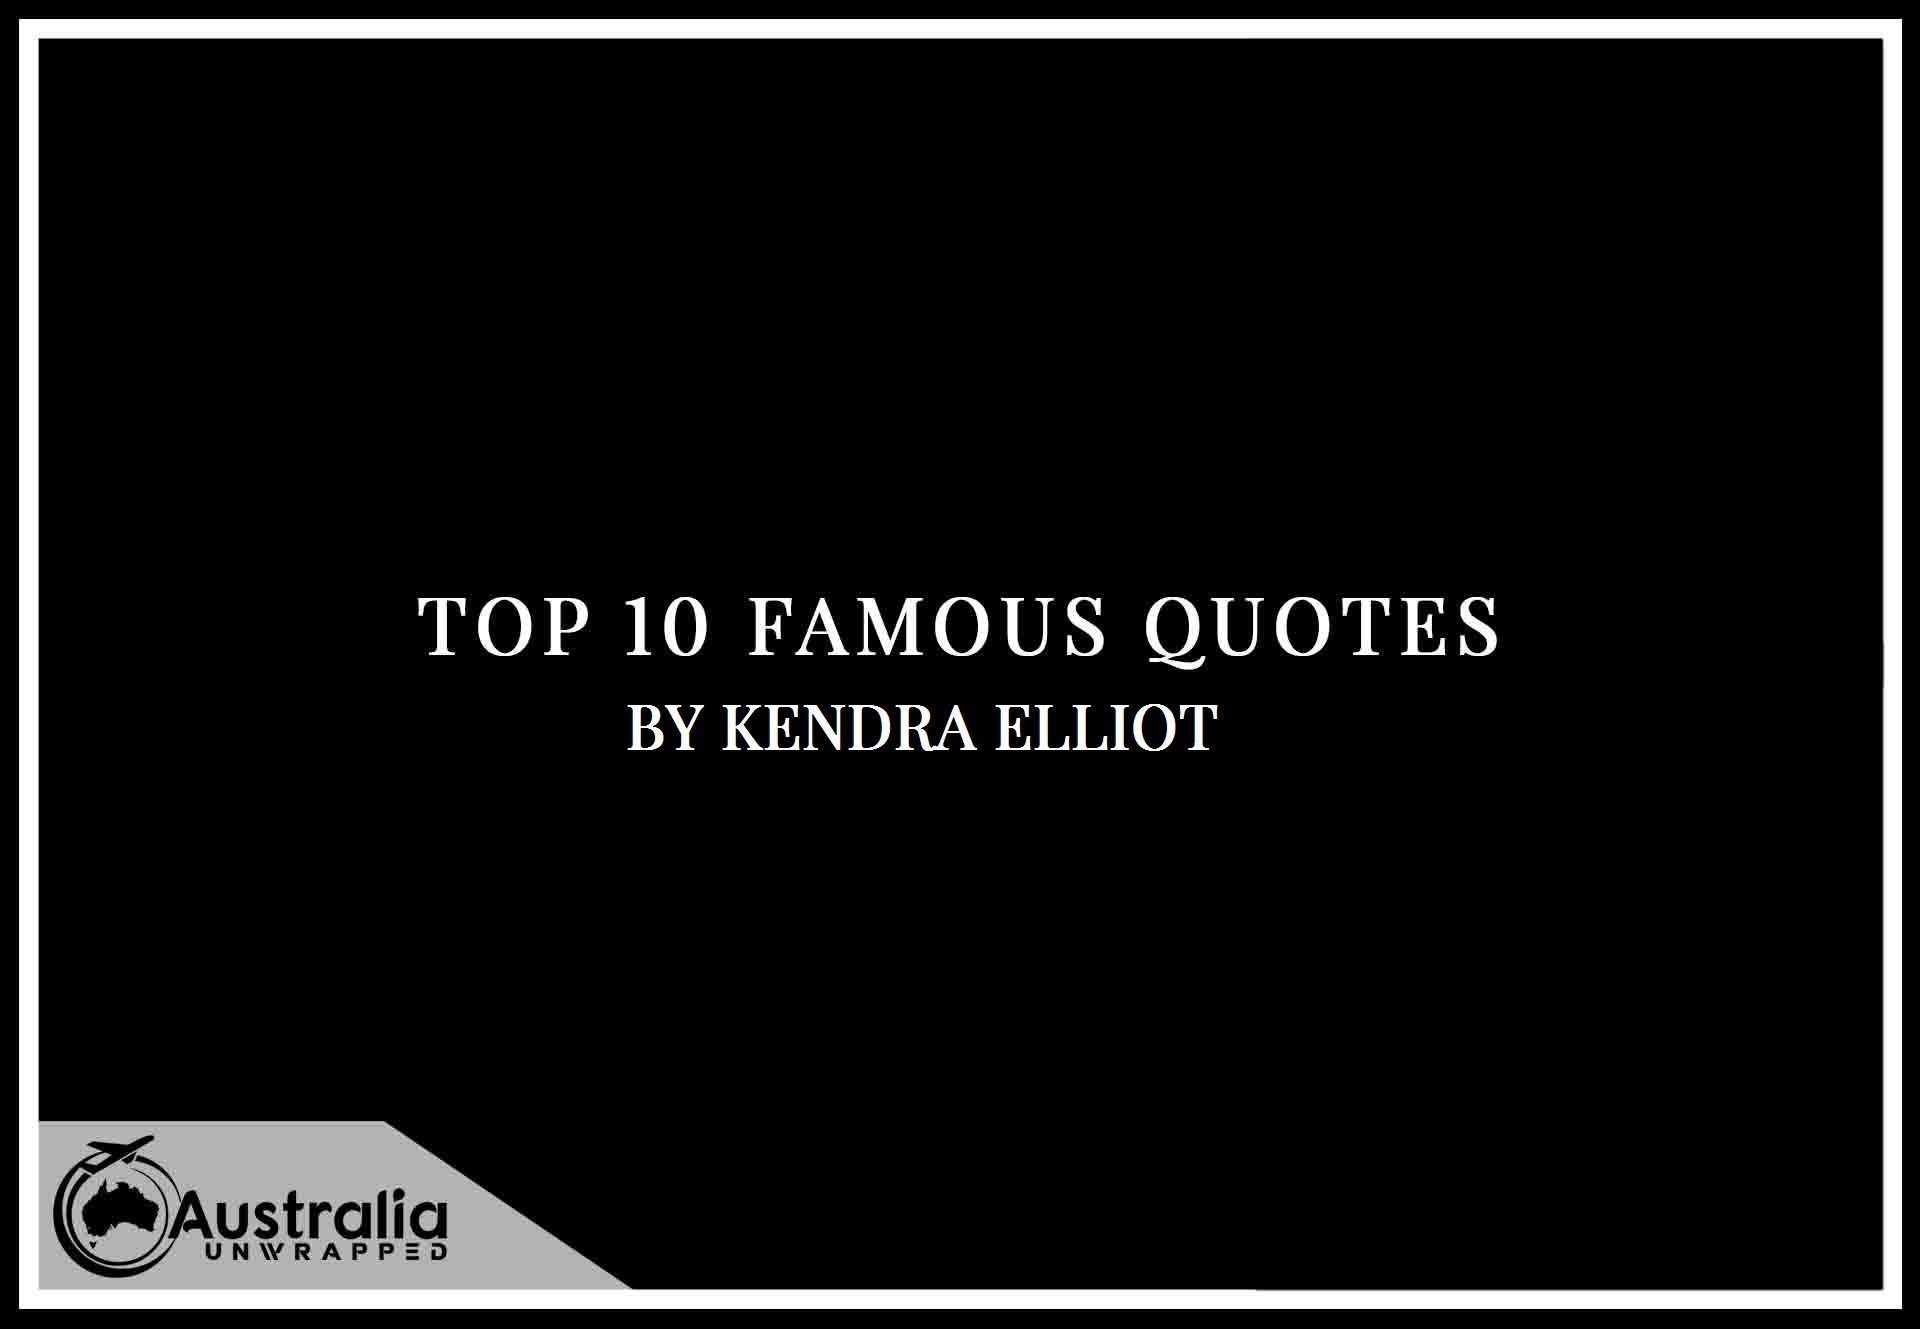 Kendra Elliot's Top 10 Popular and Famous Quotes